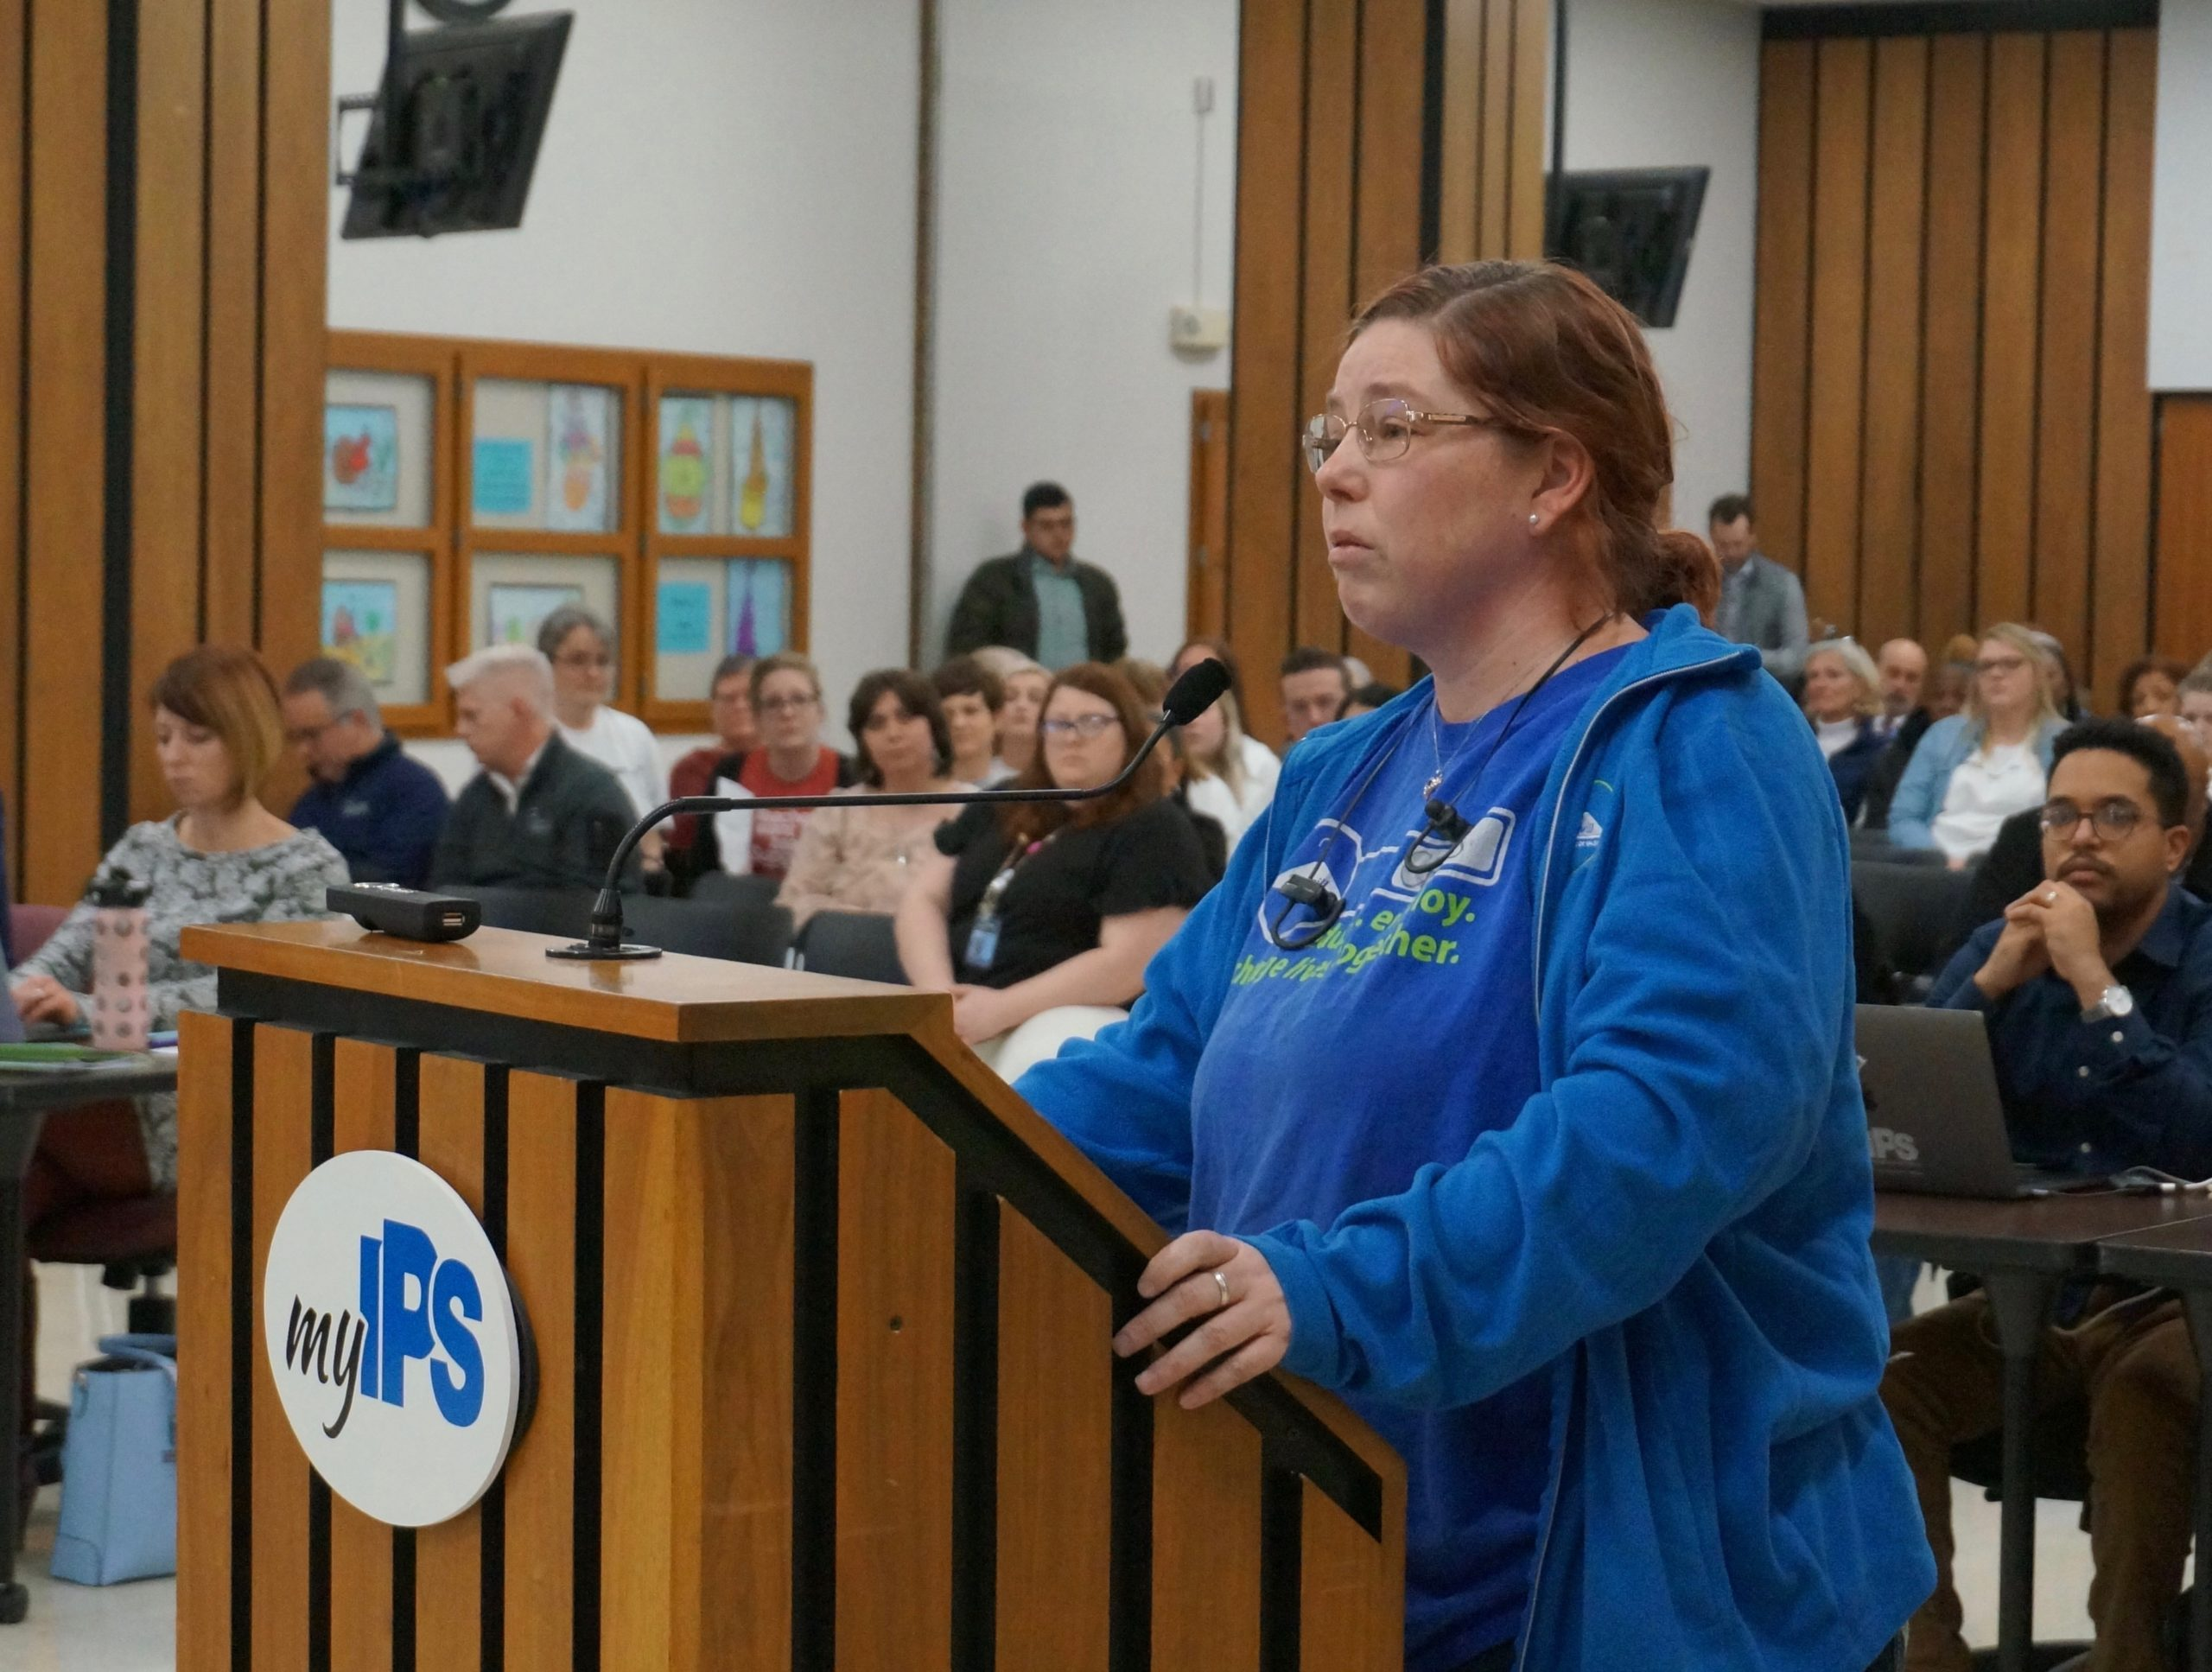 Christina Brown was one of several parents from School 67 who asked the board to keep the current educators.